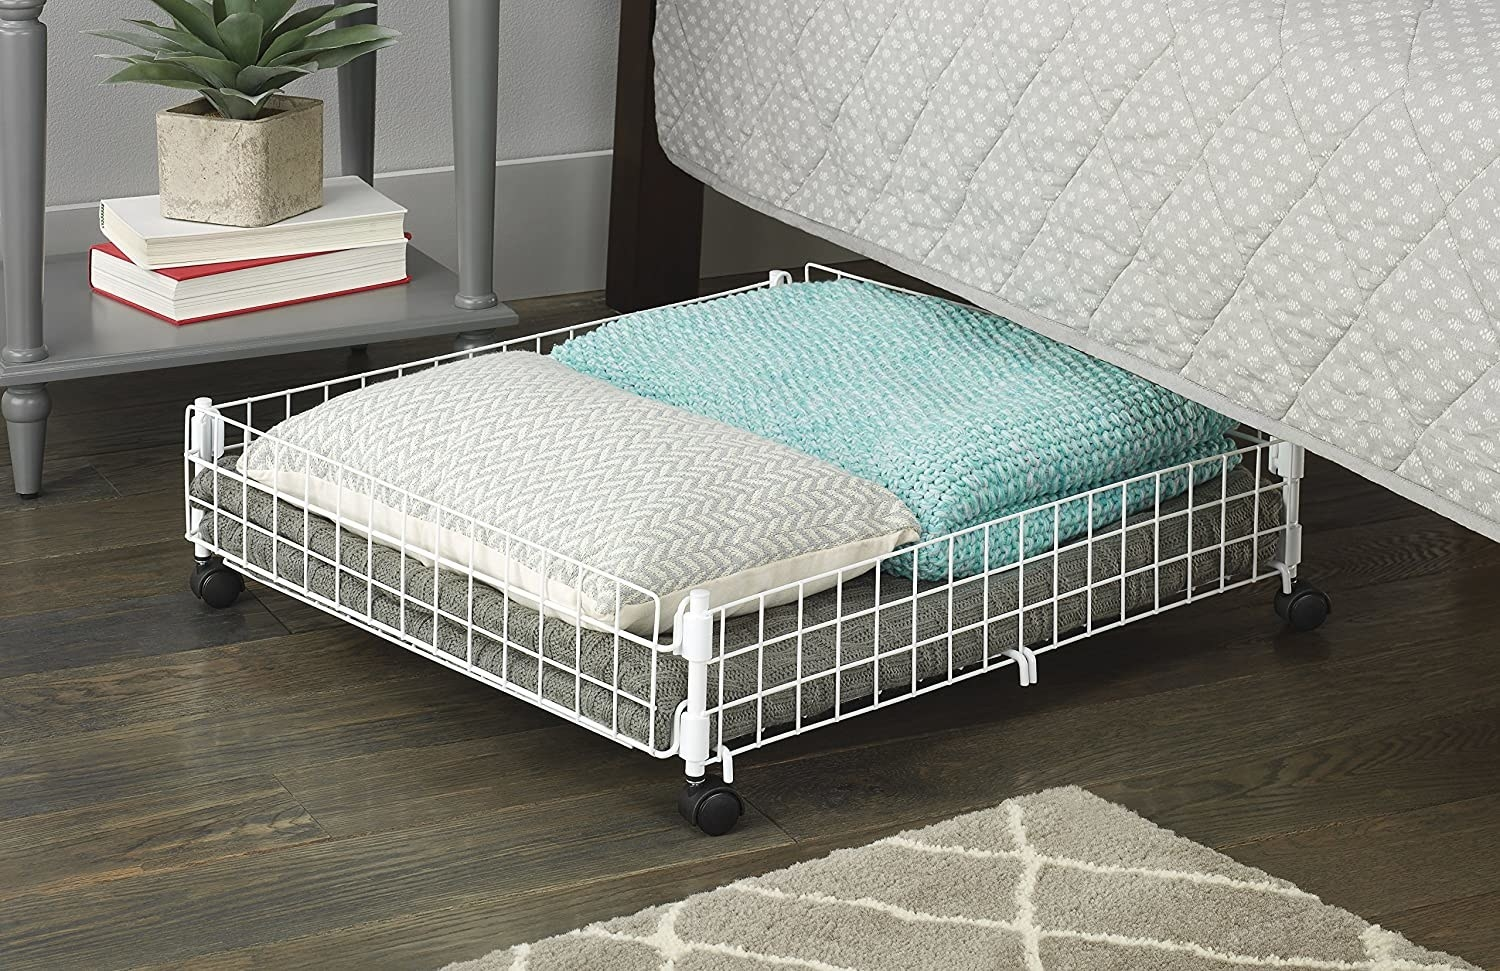 A wheeled, flat cart with a grid design under a bed